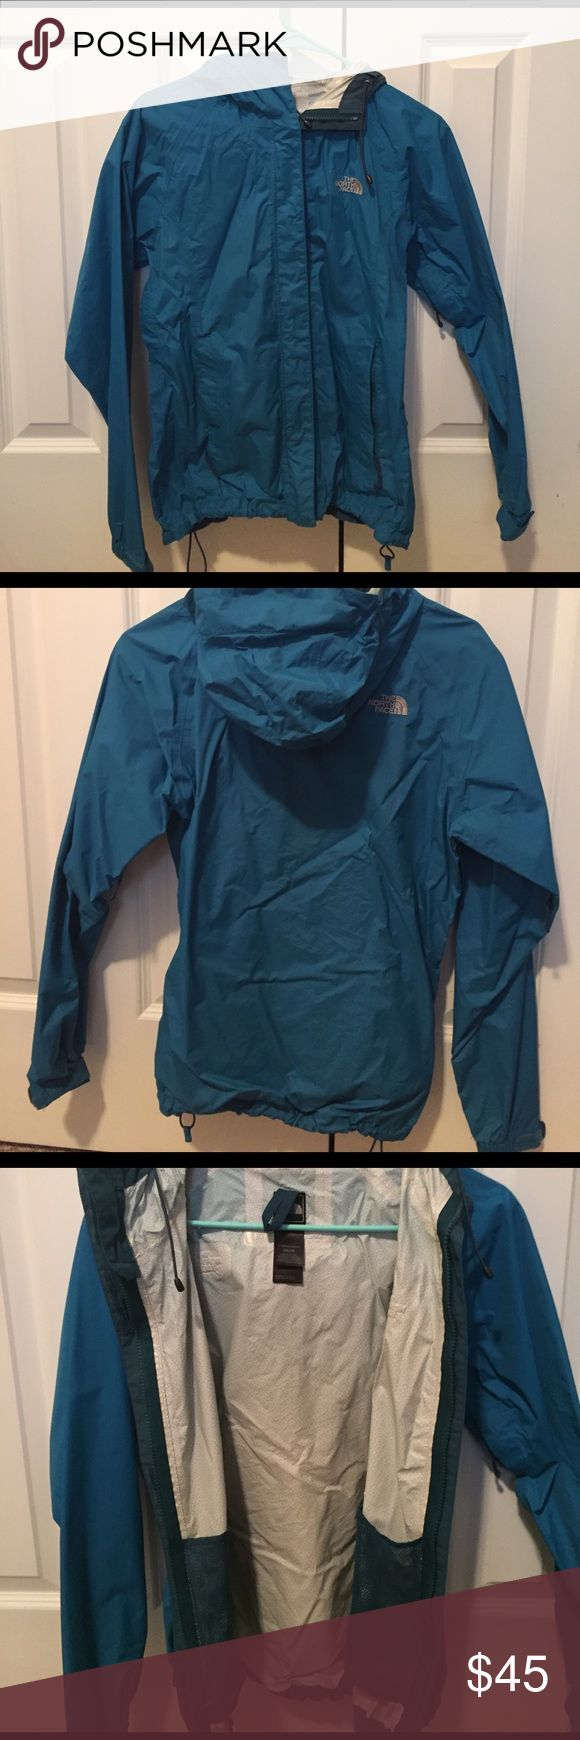 Spring blue North Face rain jacket! Great color for spring, in great condition, smoke free home, no rips! Will take reasonable offers! The North Face Jackets & Coats